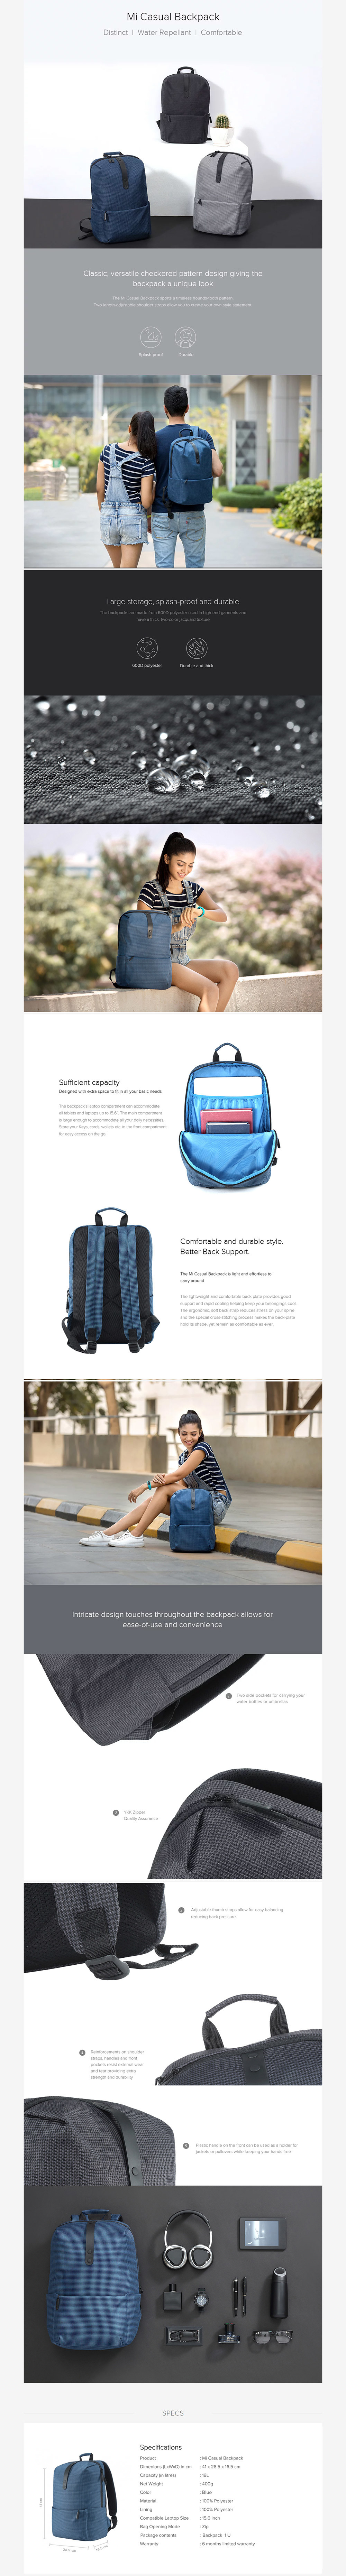 mi-casual-daypack-long-page.jpg